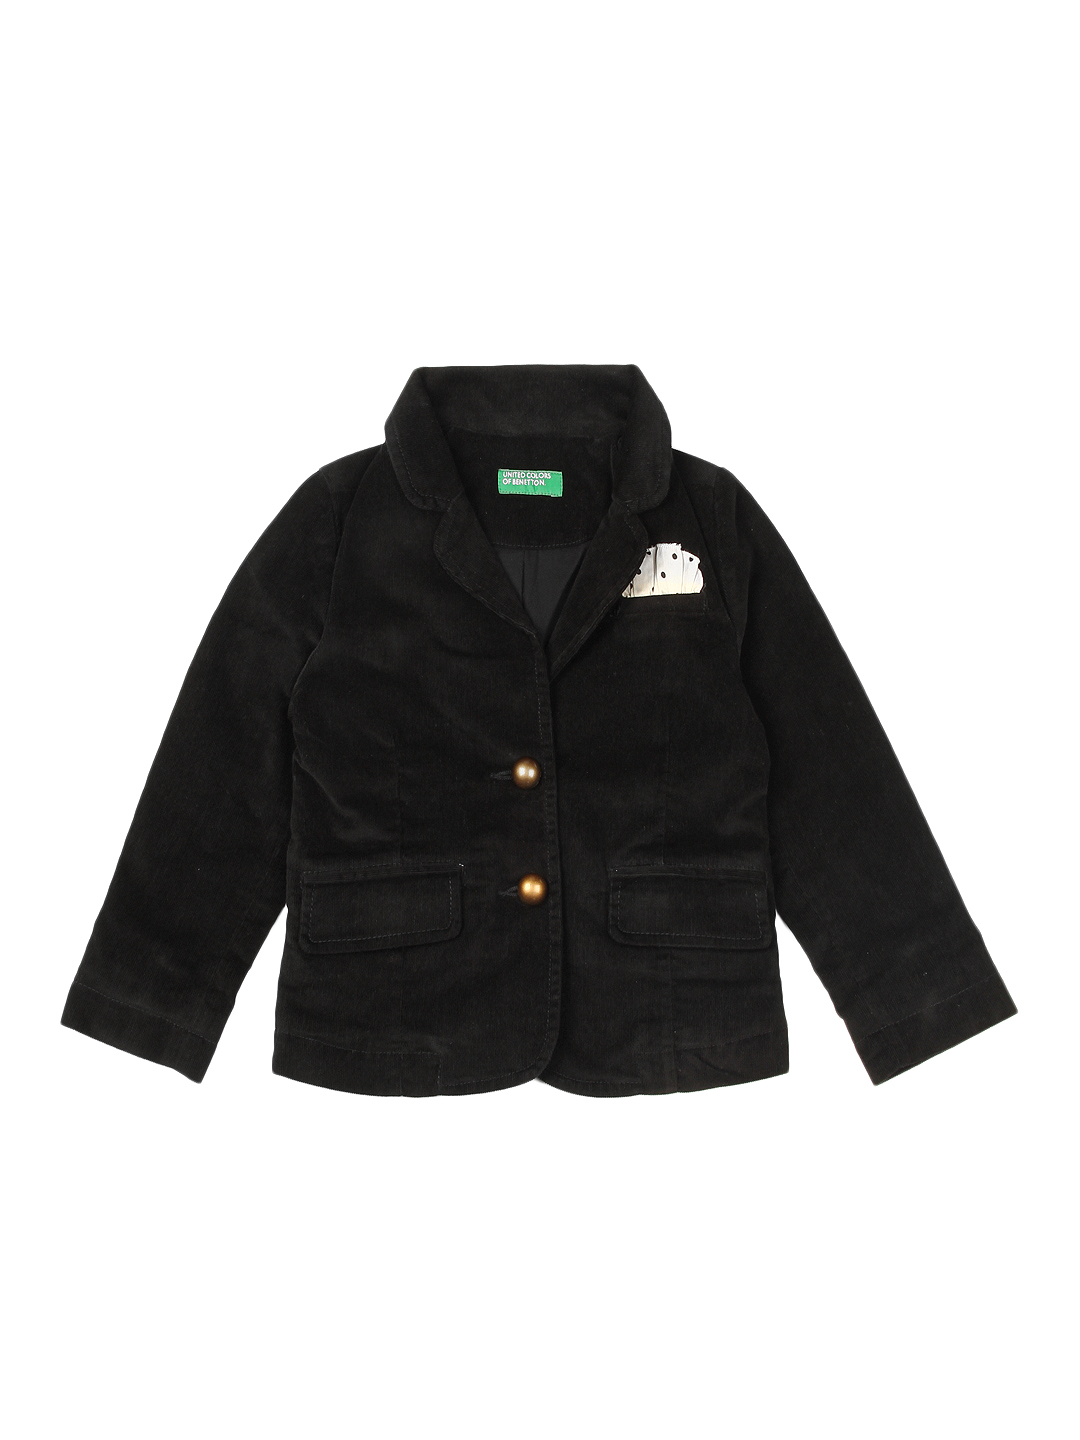 United Colors of Benetton Girls Black Corduroy Blazer